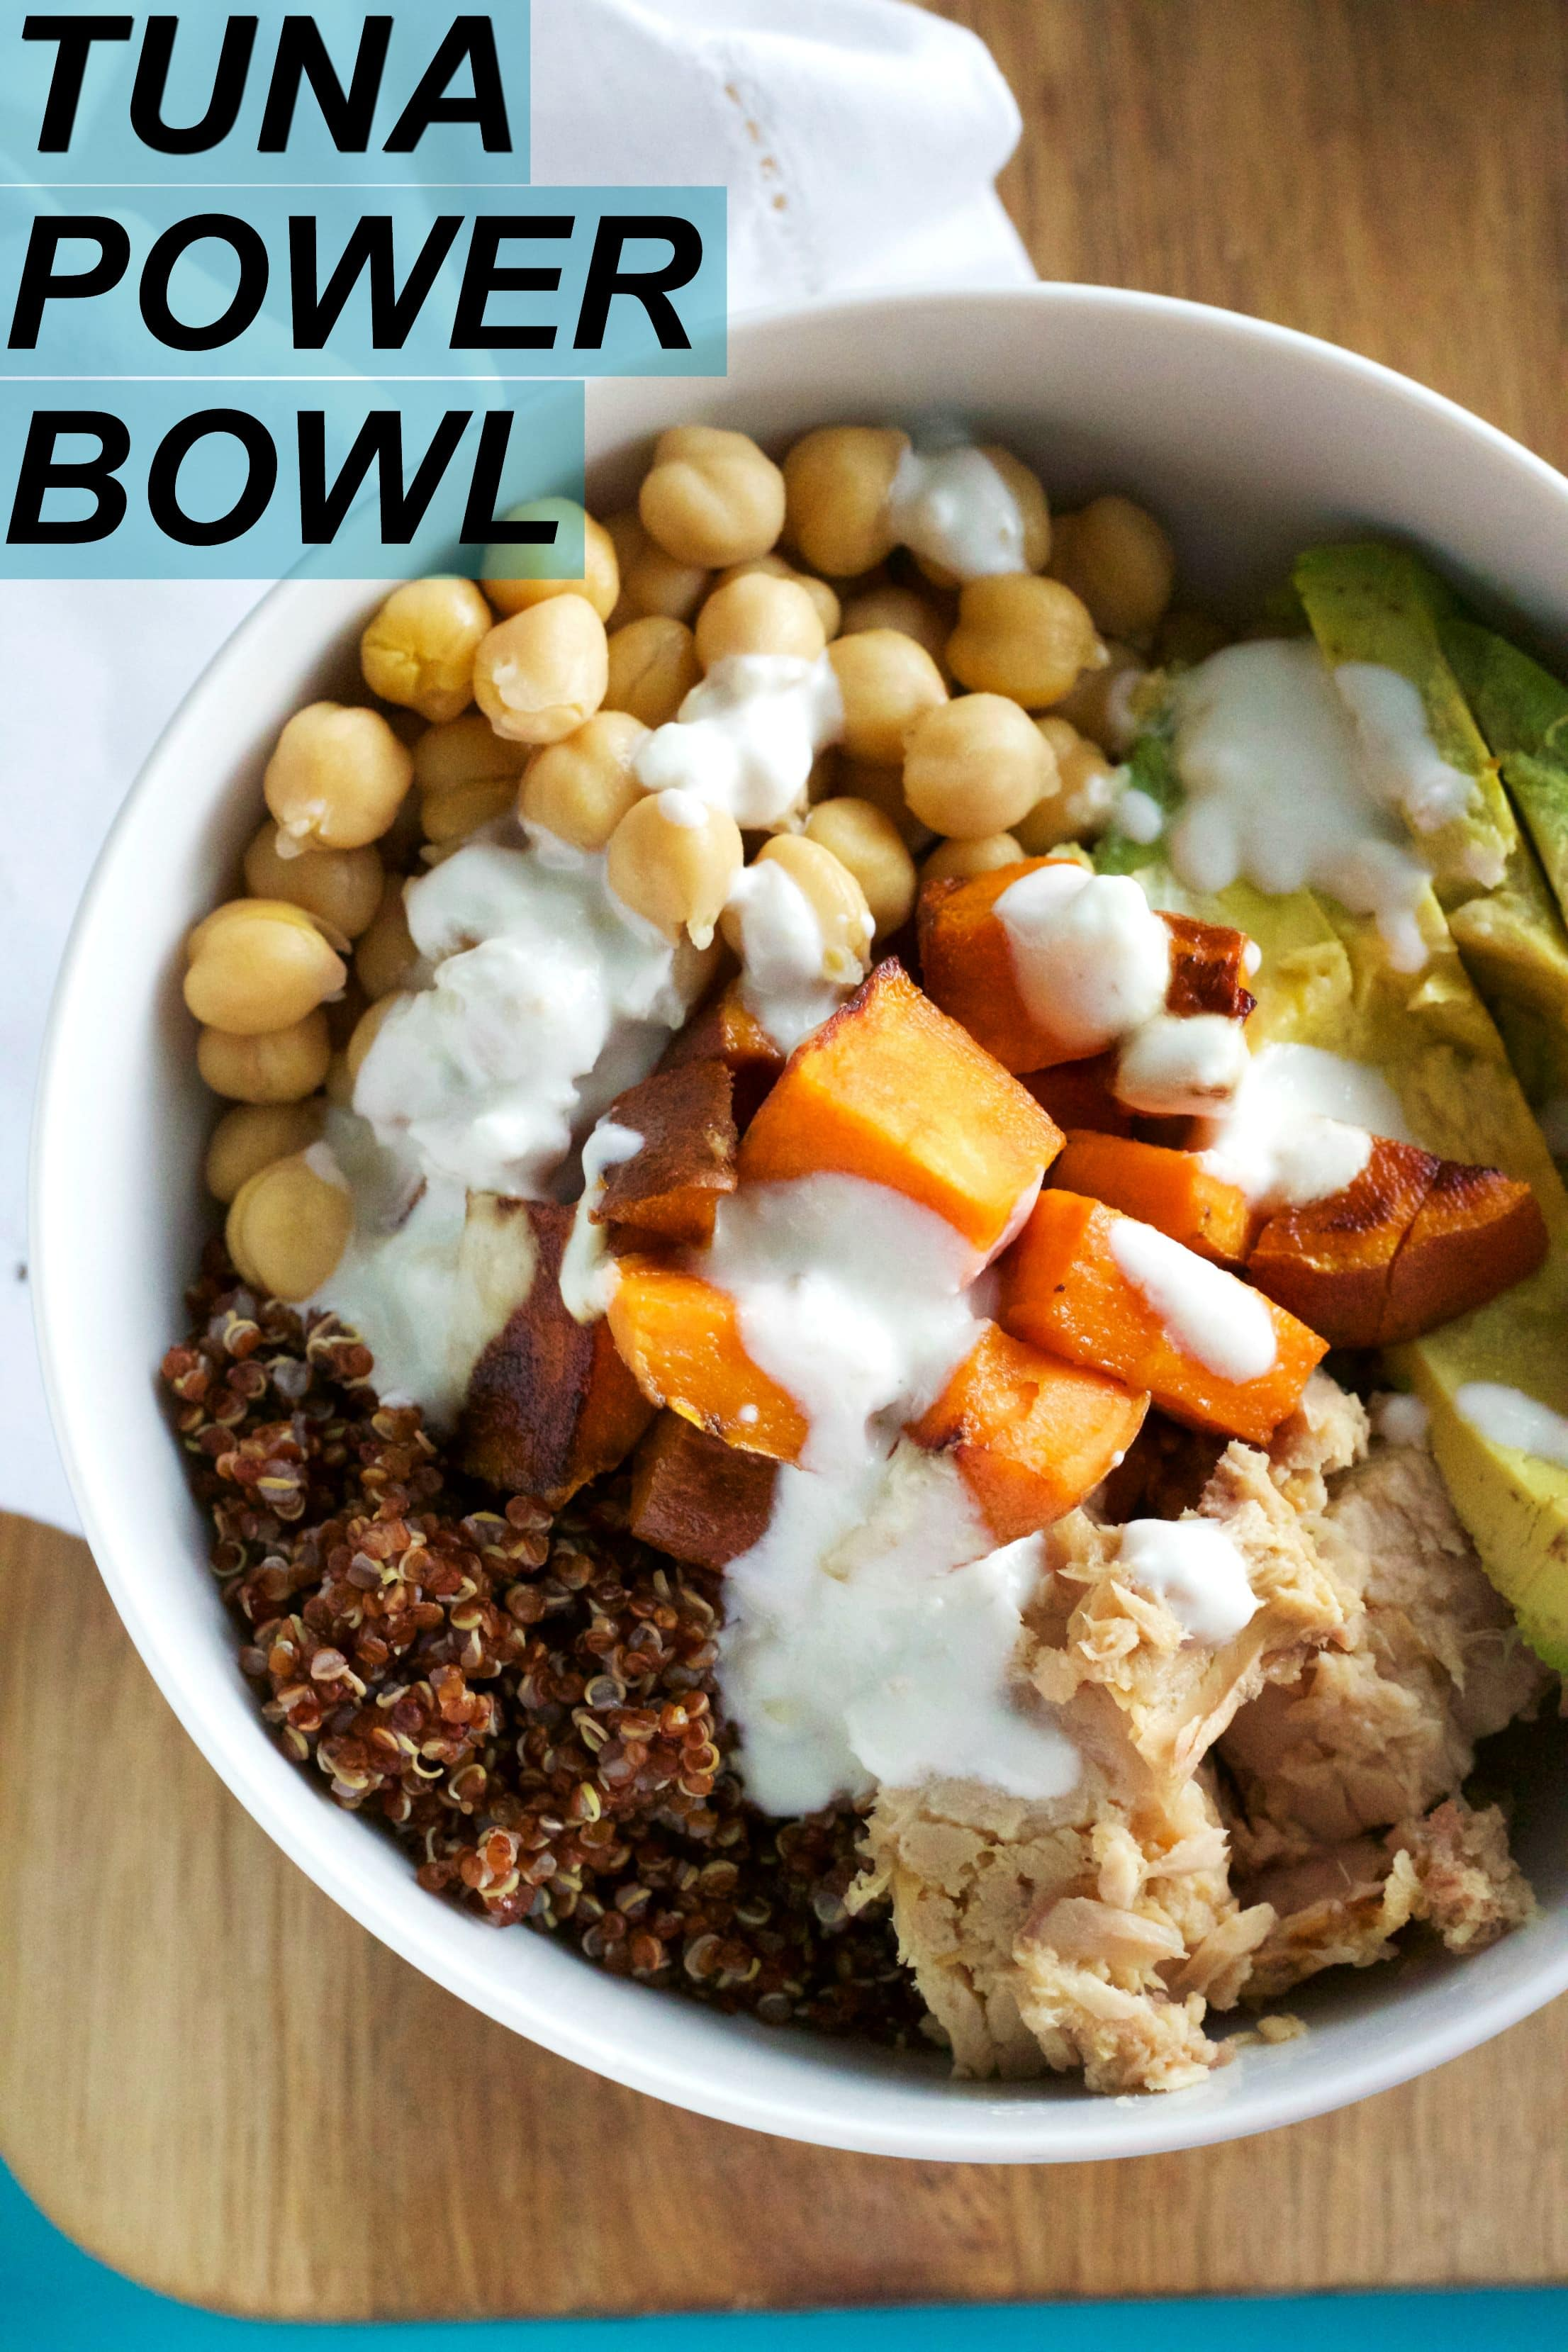 A PROTEIN Tuna Power Bowl filled with quinoa, chickpeas and tuna | thealmondeater.com